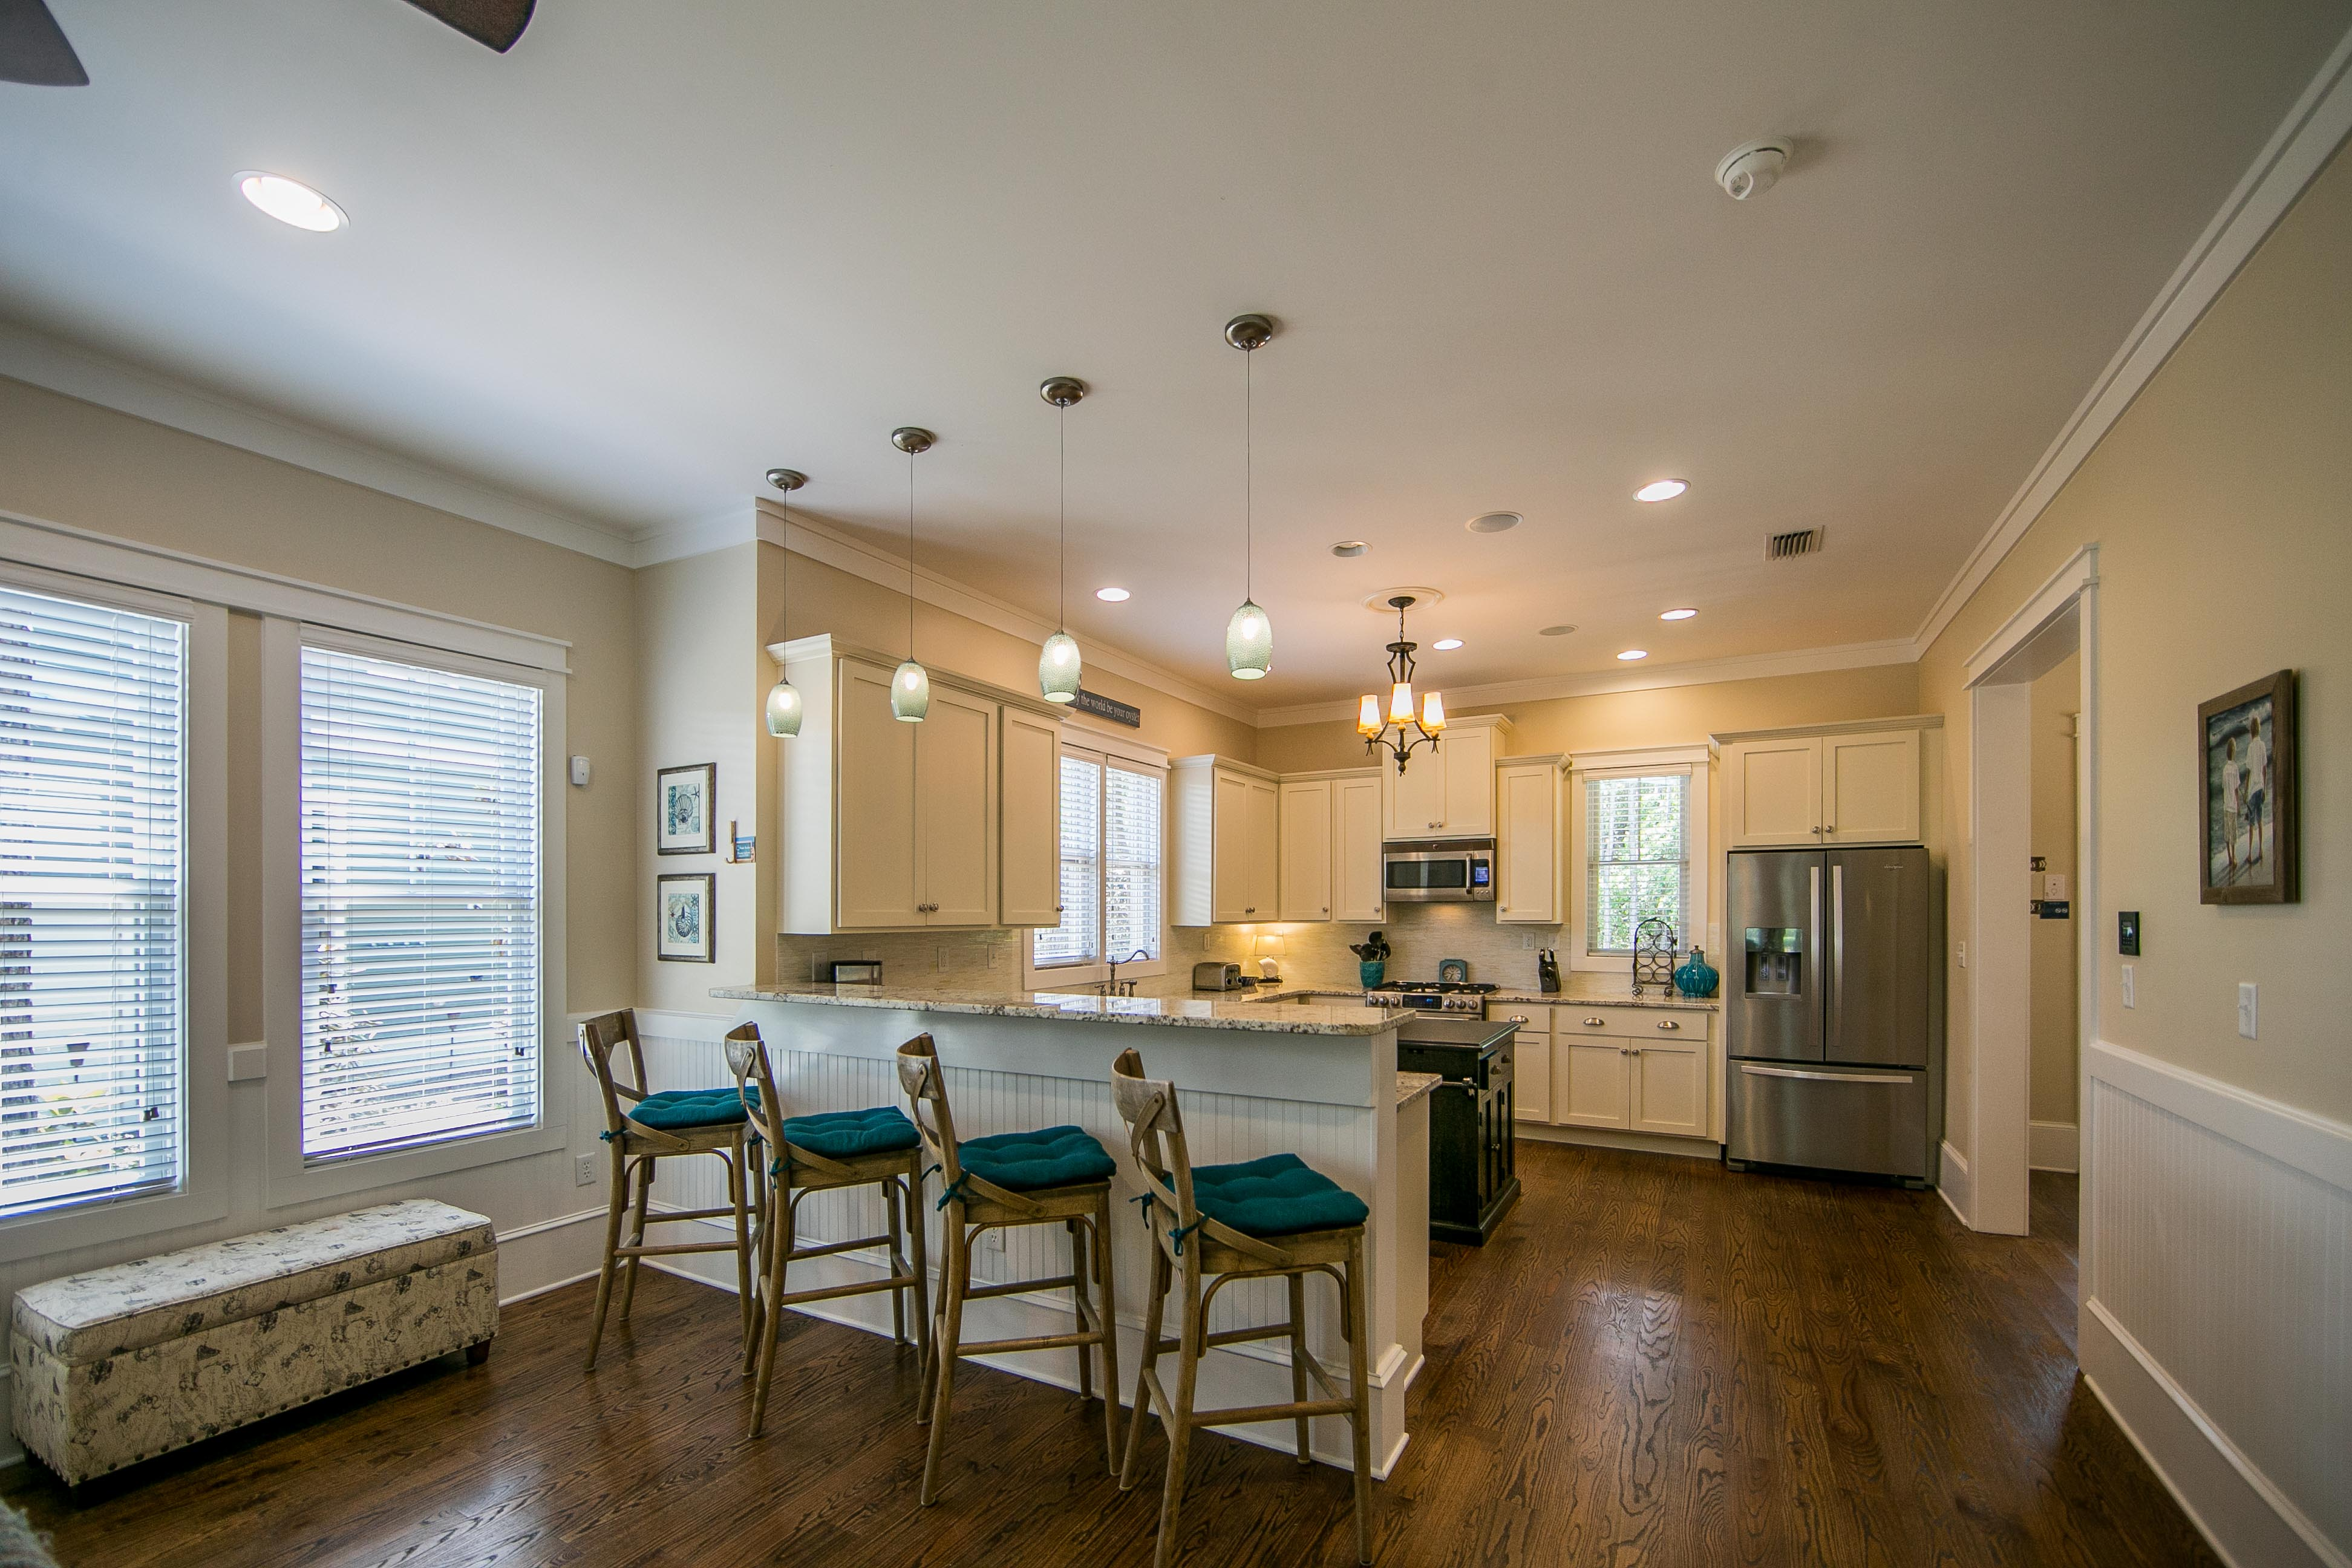 Bright open kitchen with barstool seating